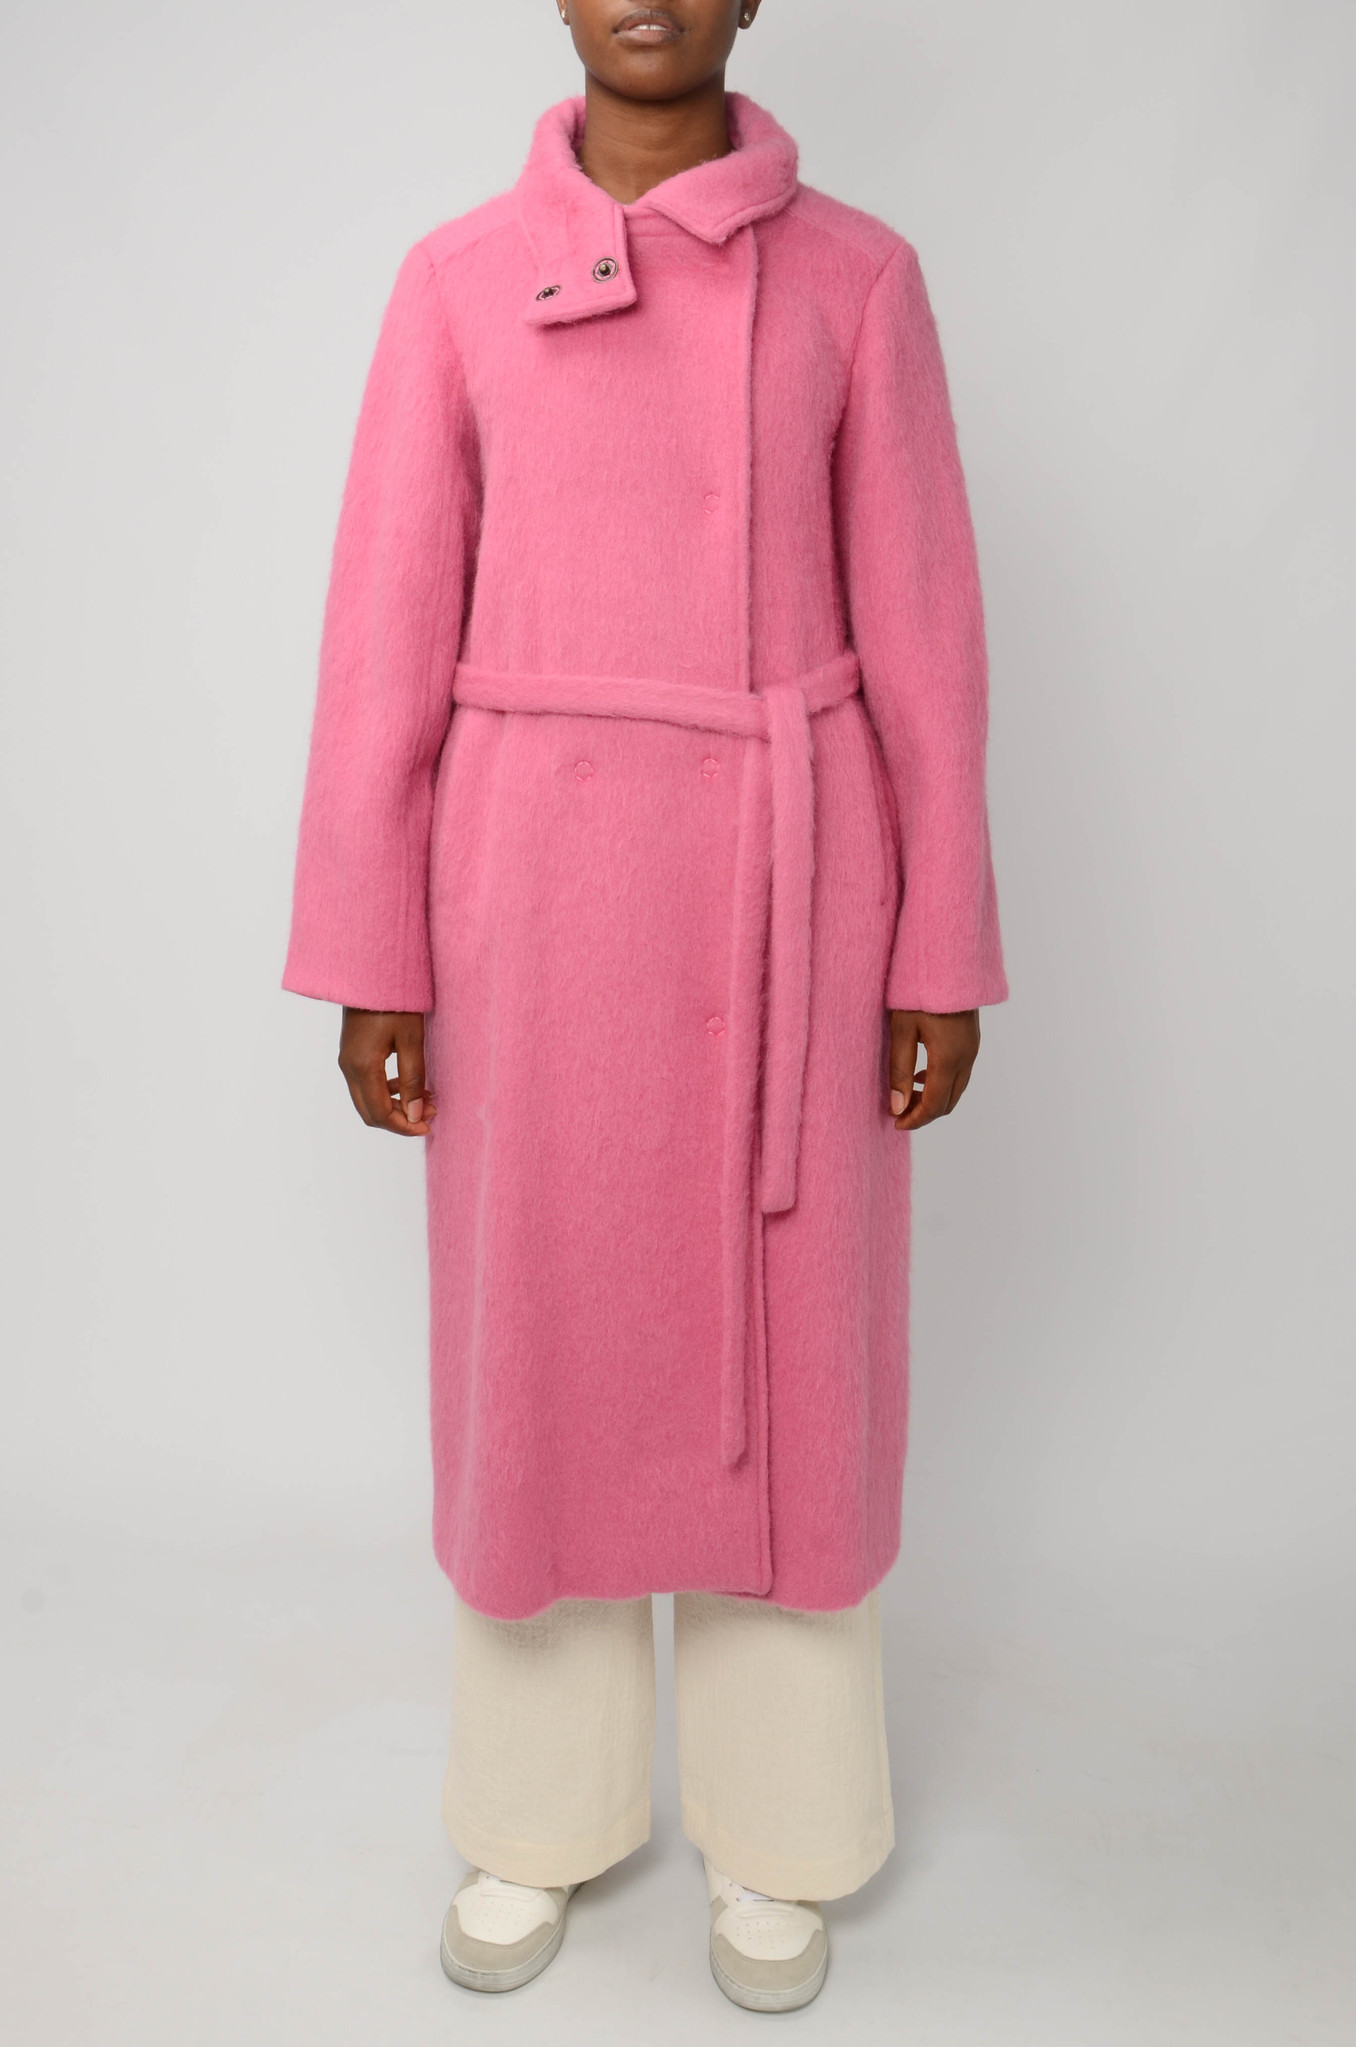 LONG BELTED COAT IN BRIGHT PINK-1